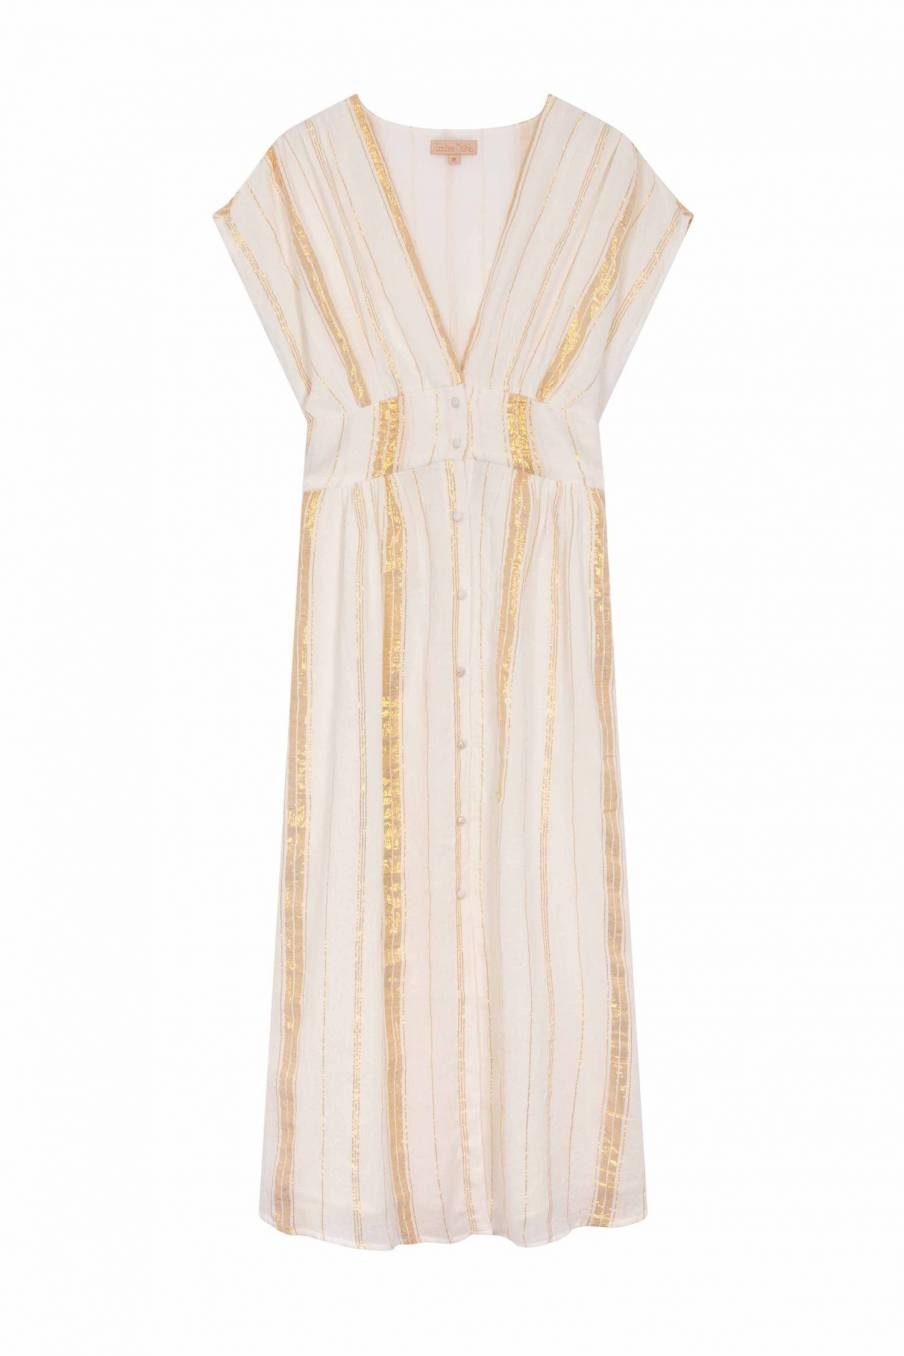 Dress Tylia White & Gold Stripes